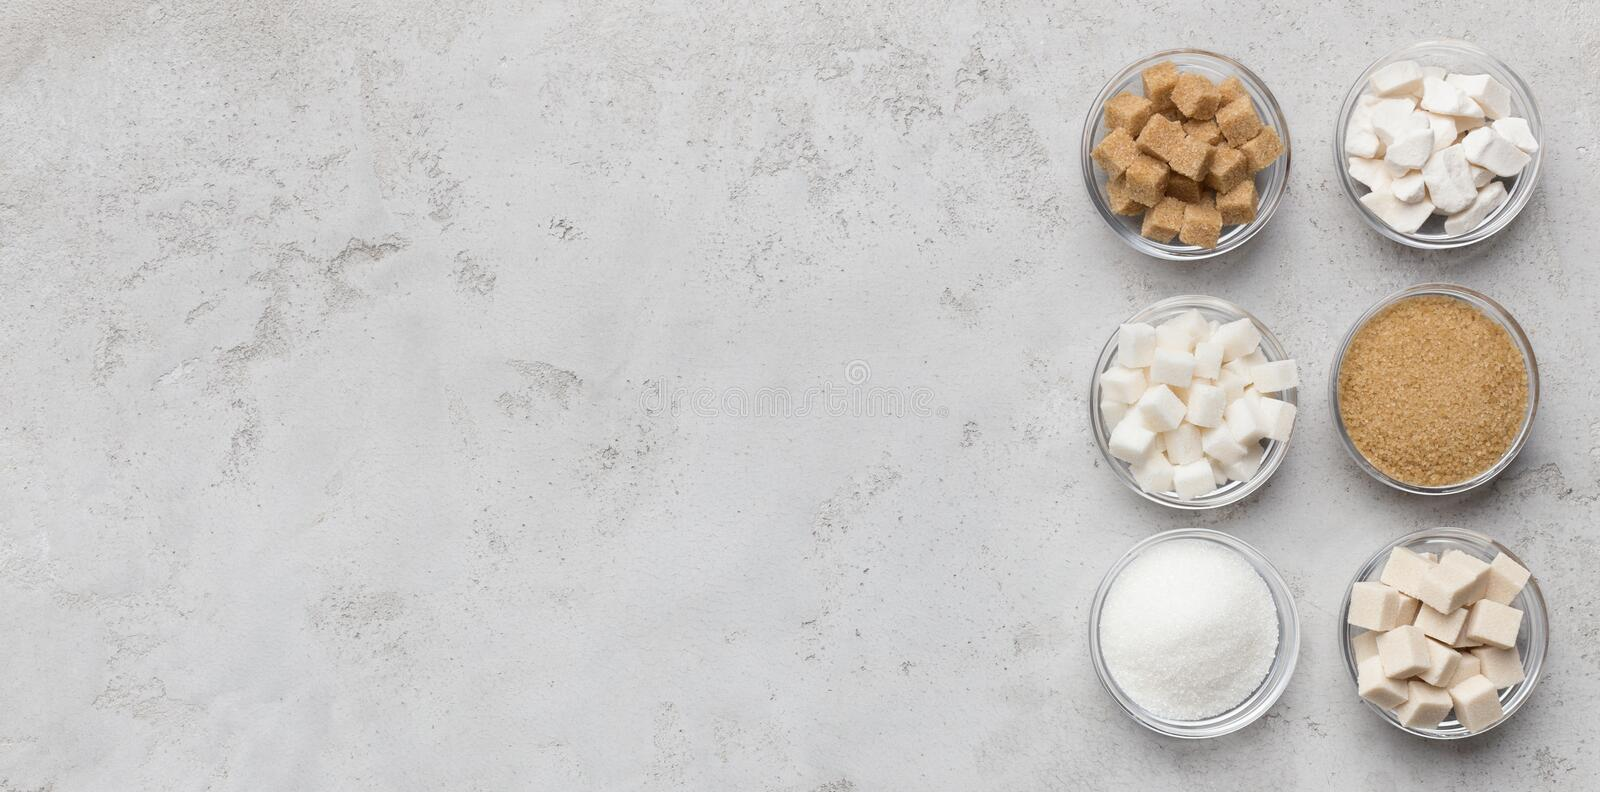 Collection of different kinds of sugar on gray background royalty free stock photos